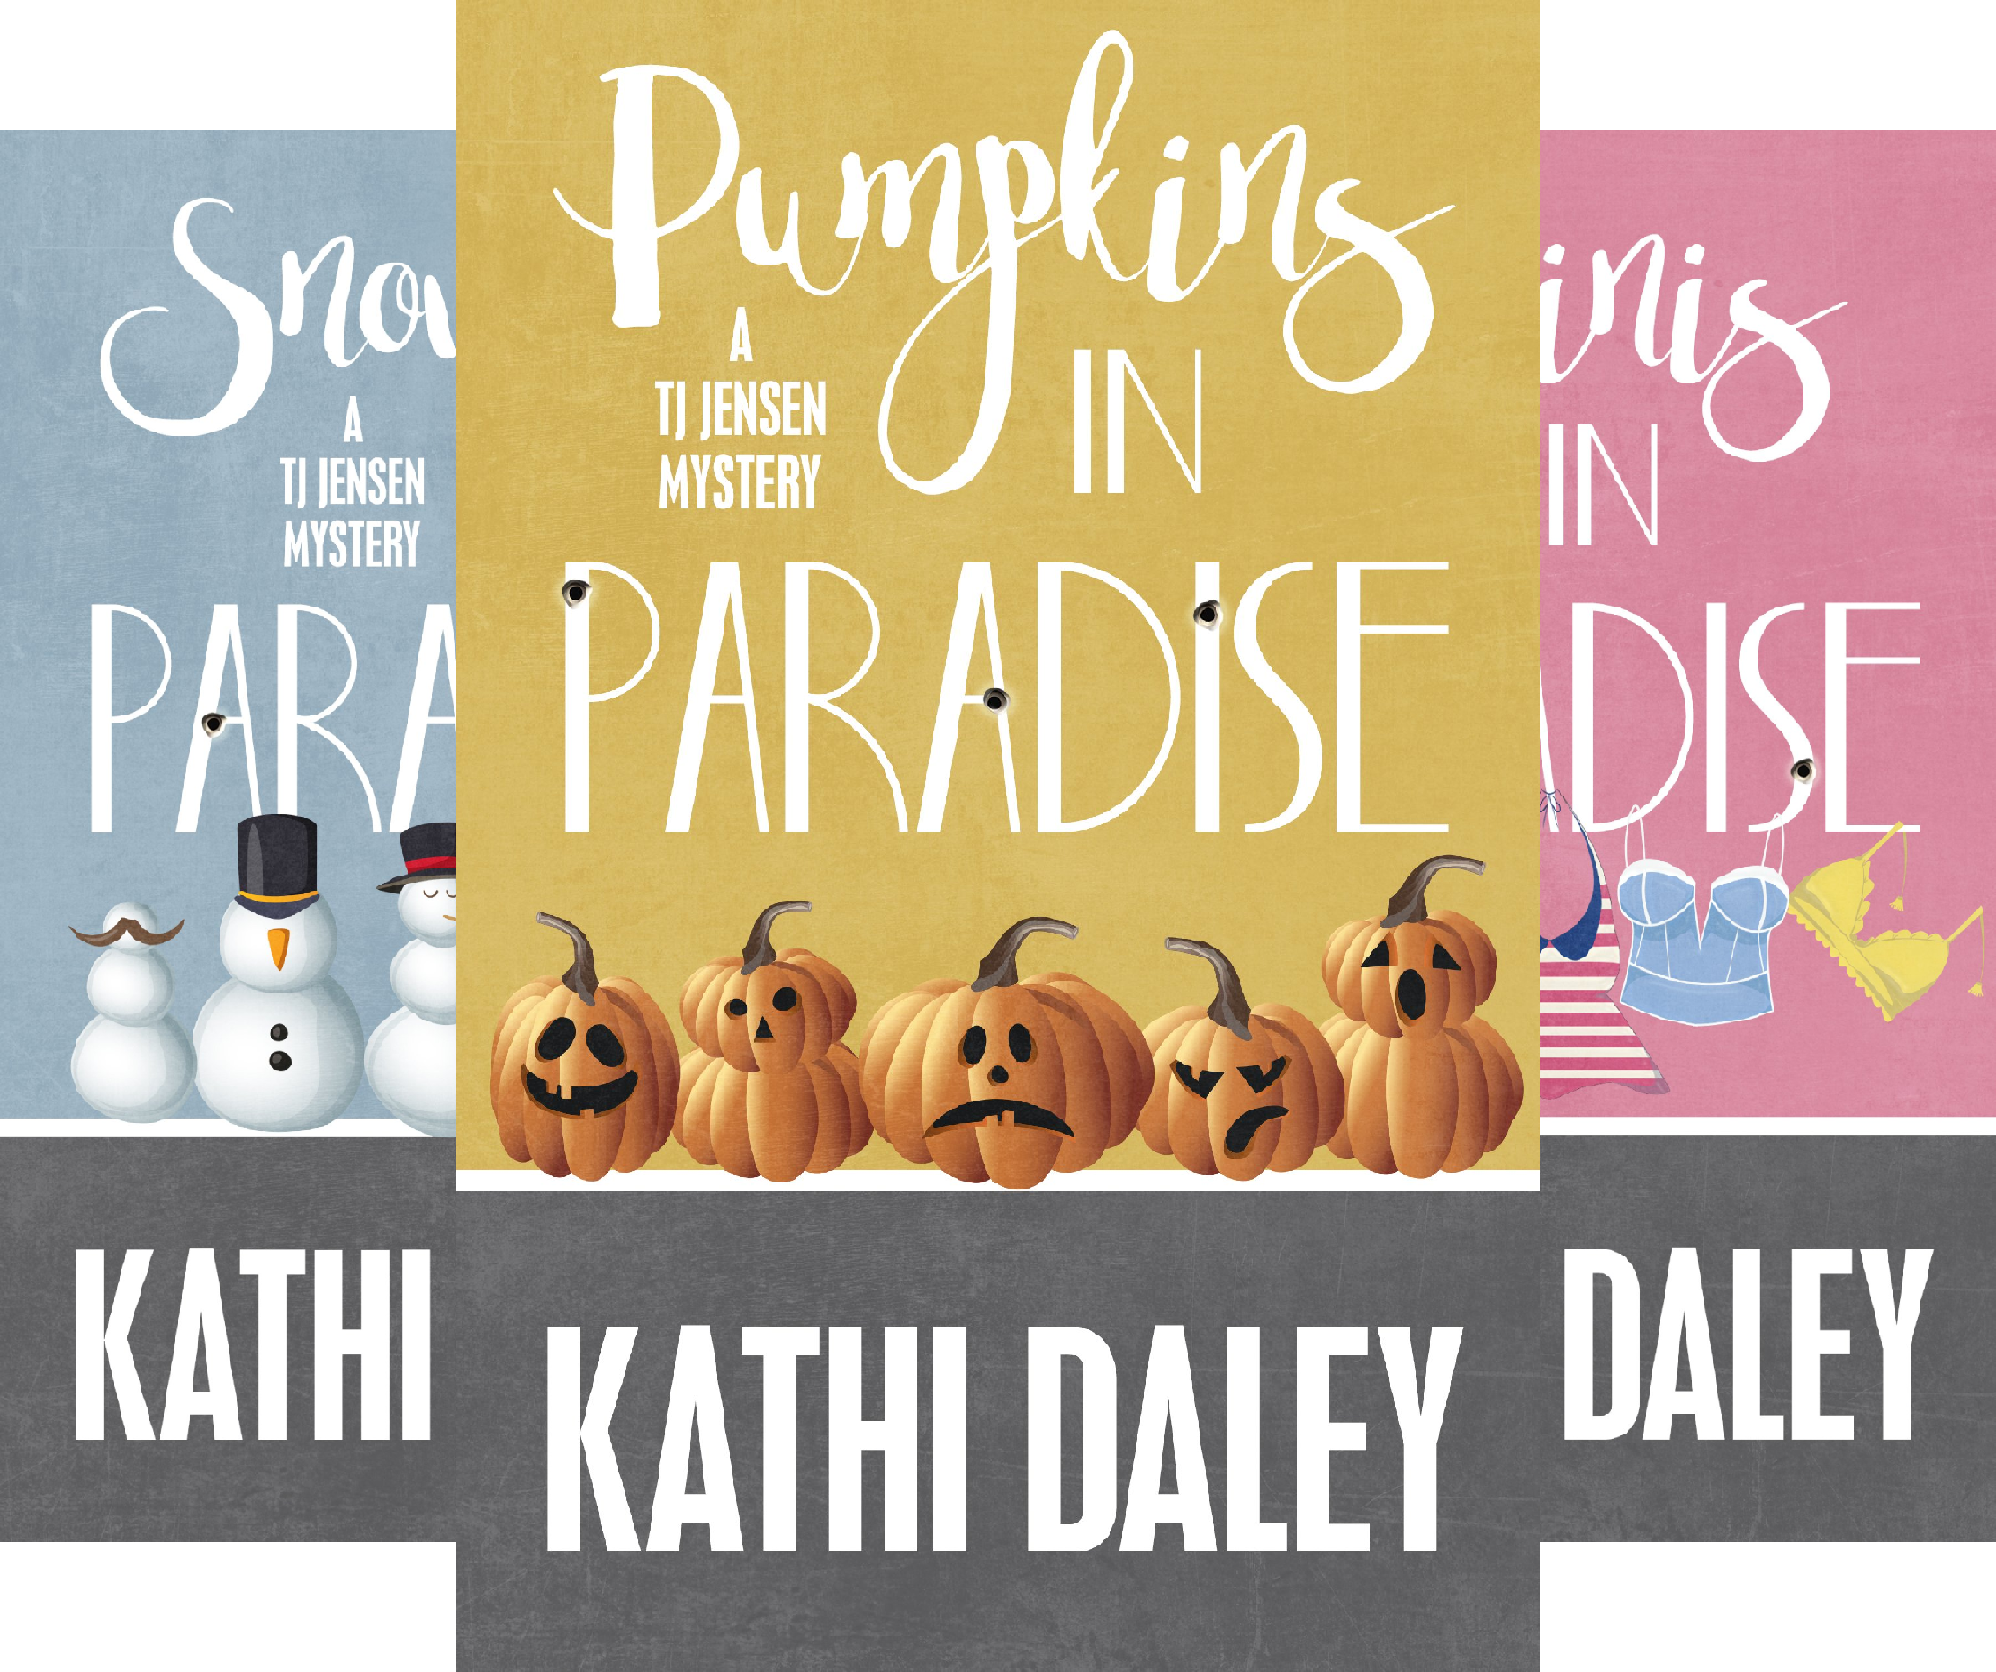 pumpkins in paradise by kathi daley buyer's guide